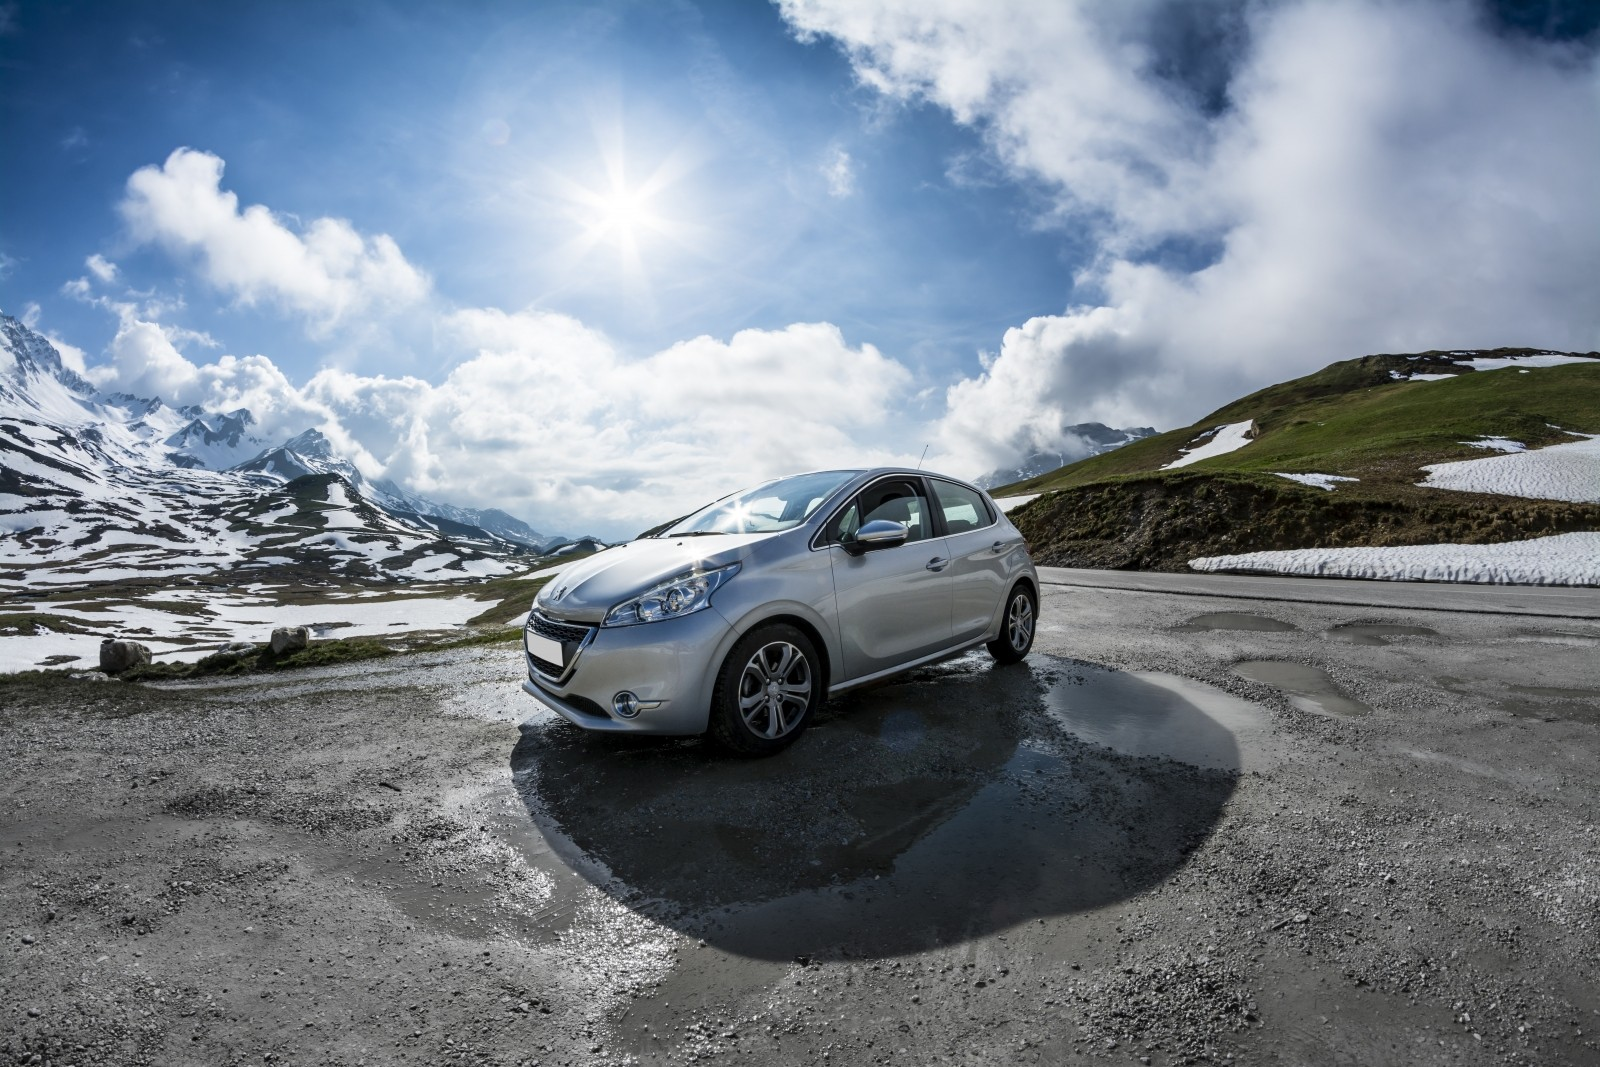 peugeot-208-car-mountain-view-blue-white-spring